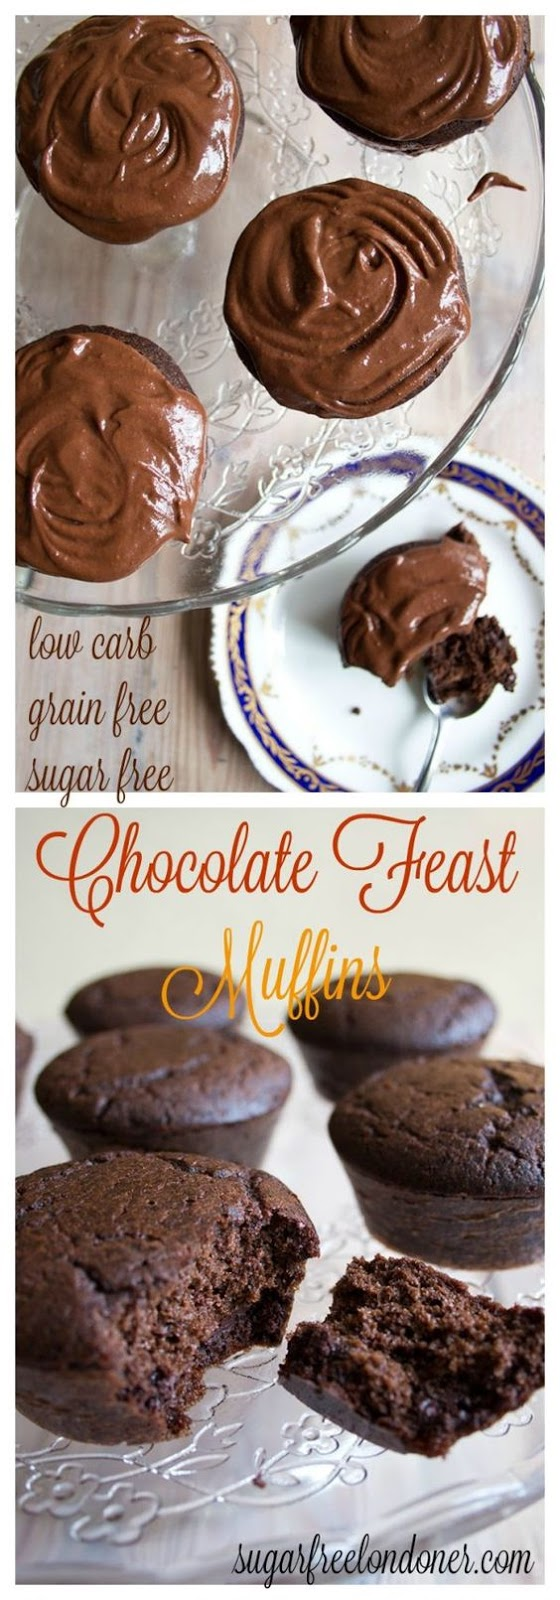 Sugar Free Chocolate Muffins (low carb)